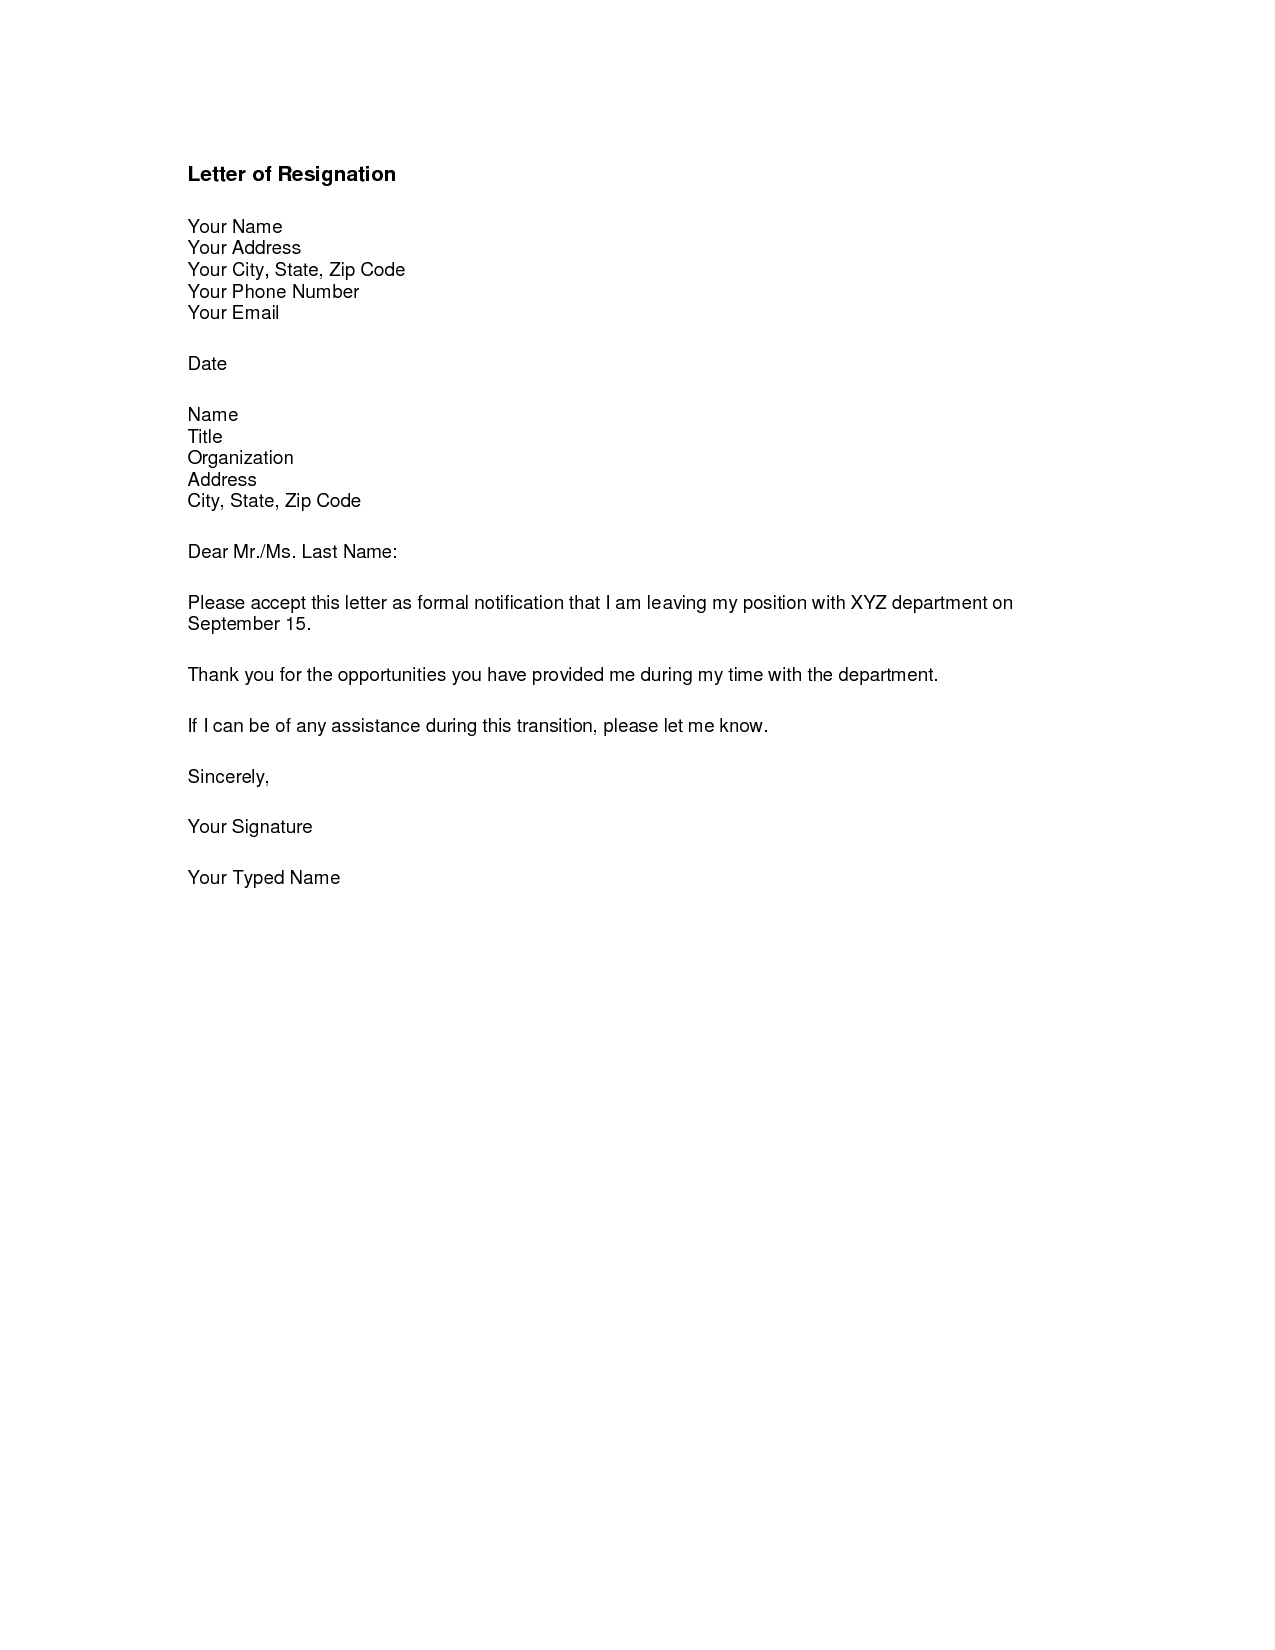 Printable Sample Letter of Resignation Form – Sample of Letter Resignation